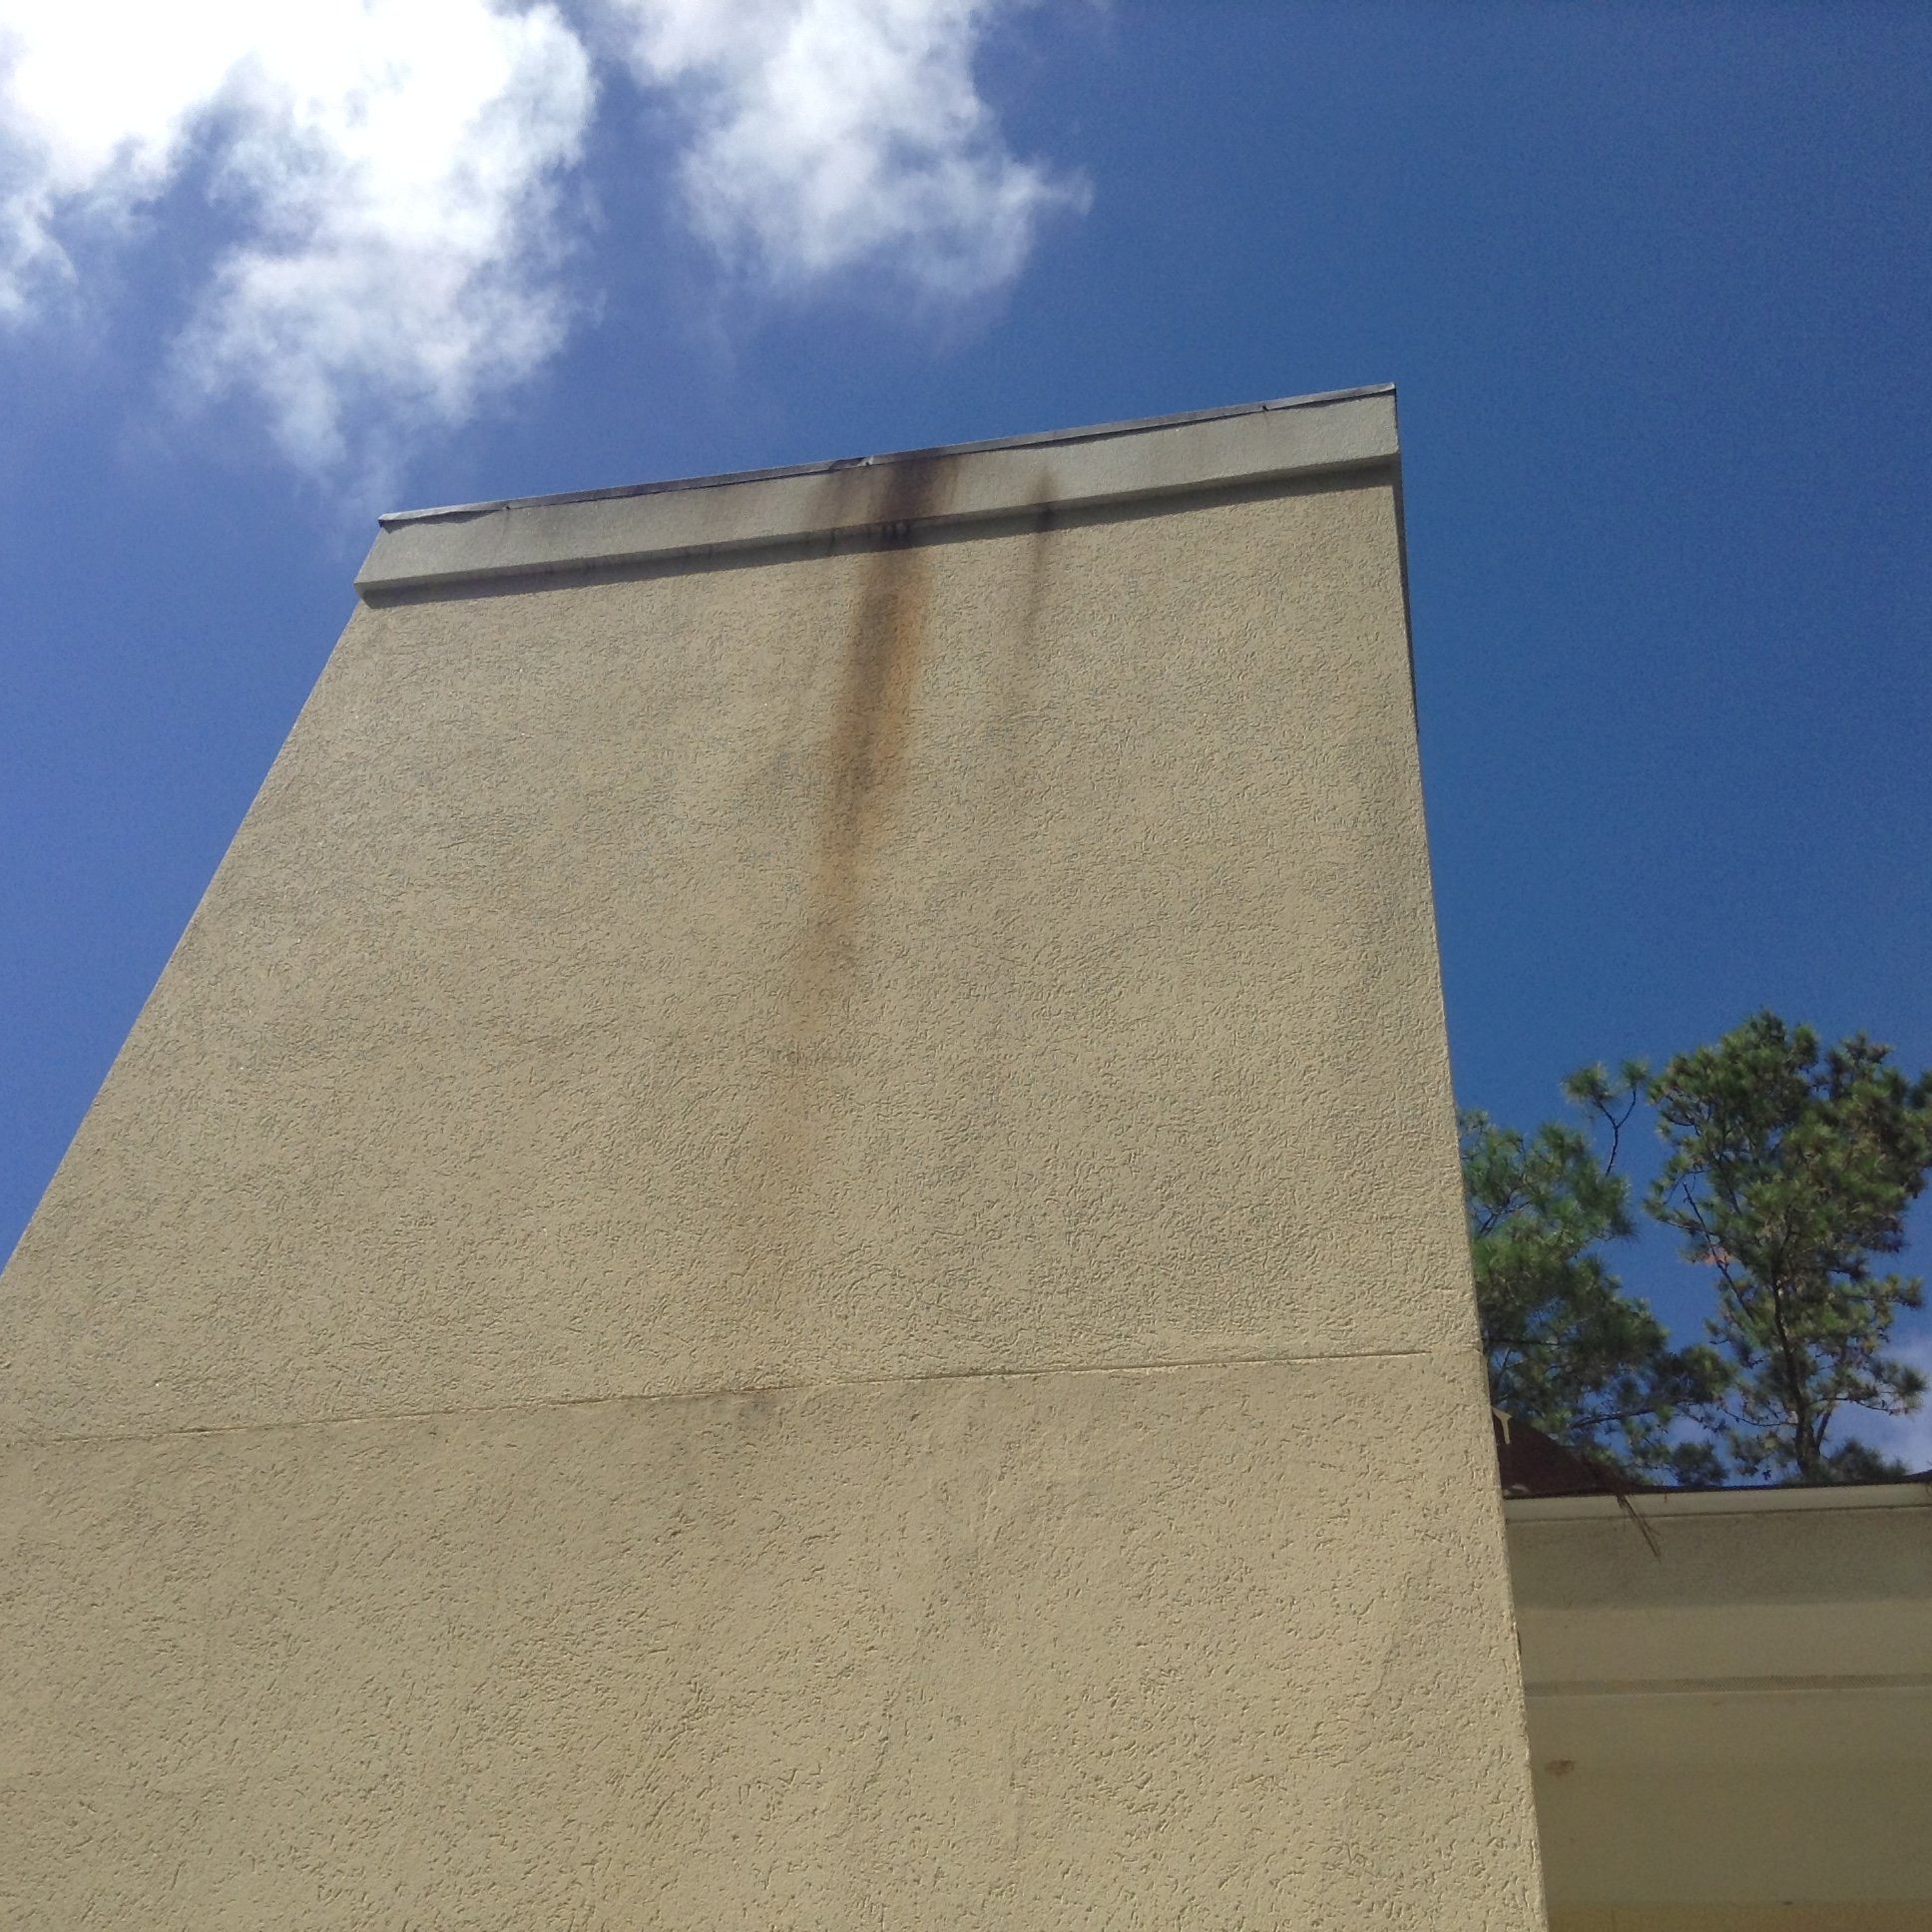 Rust Removal Mikes Pressure Cleaning Call Today Or